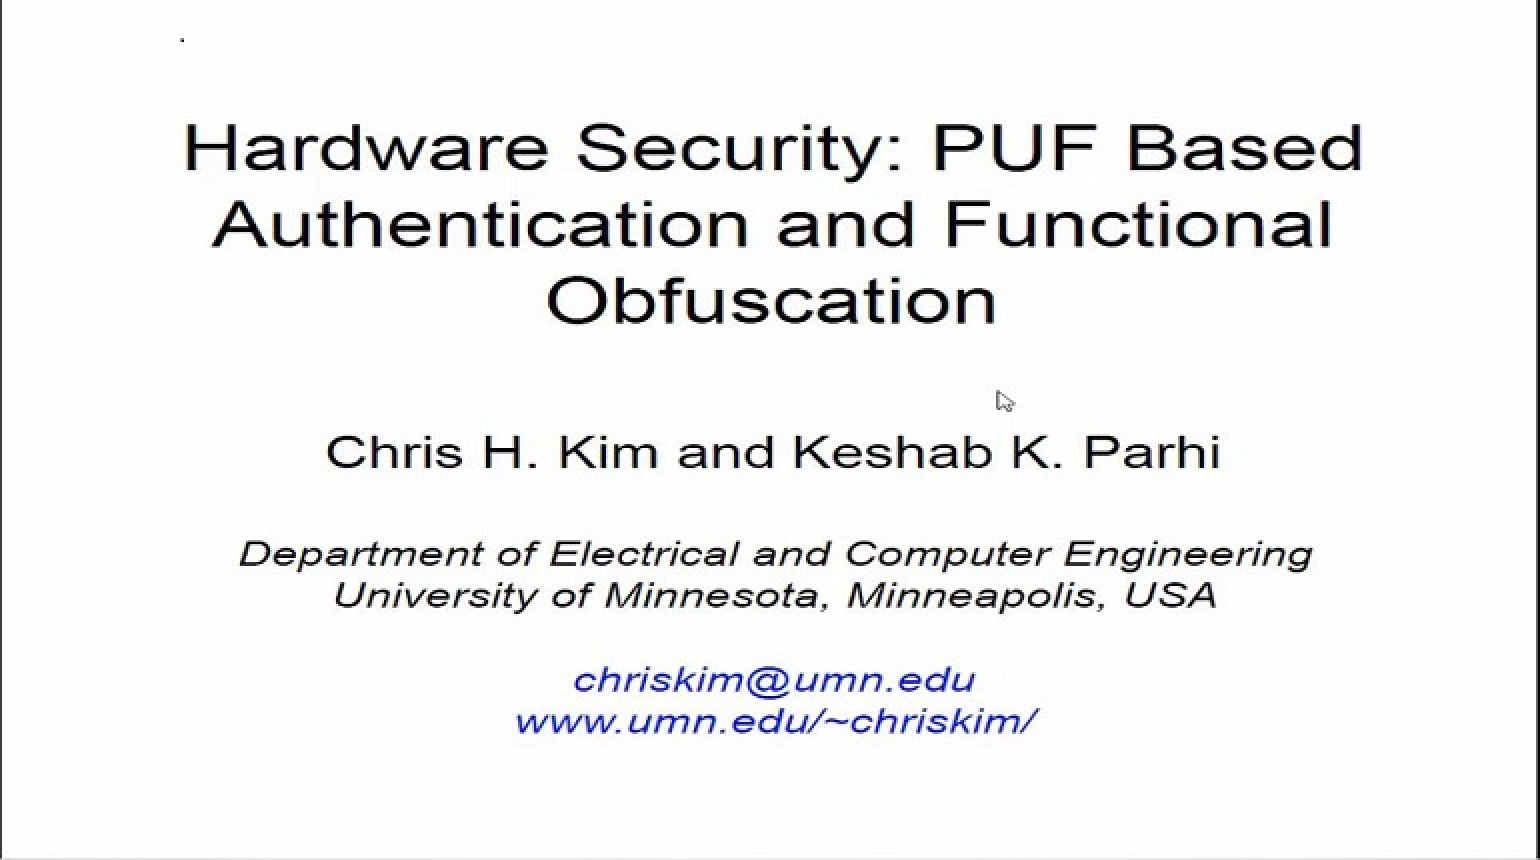 Hardware Security: PUF Based Authentication and Functional Obfuscation